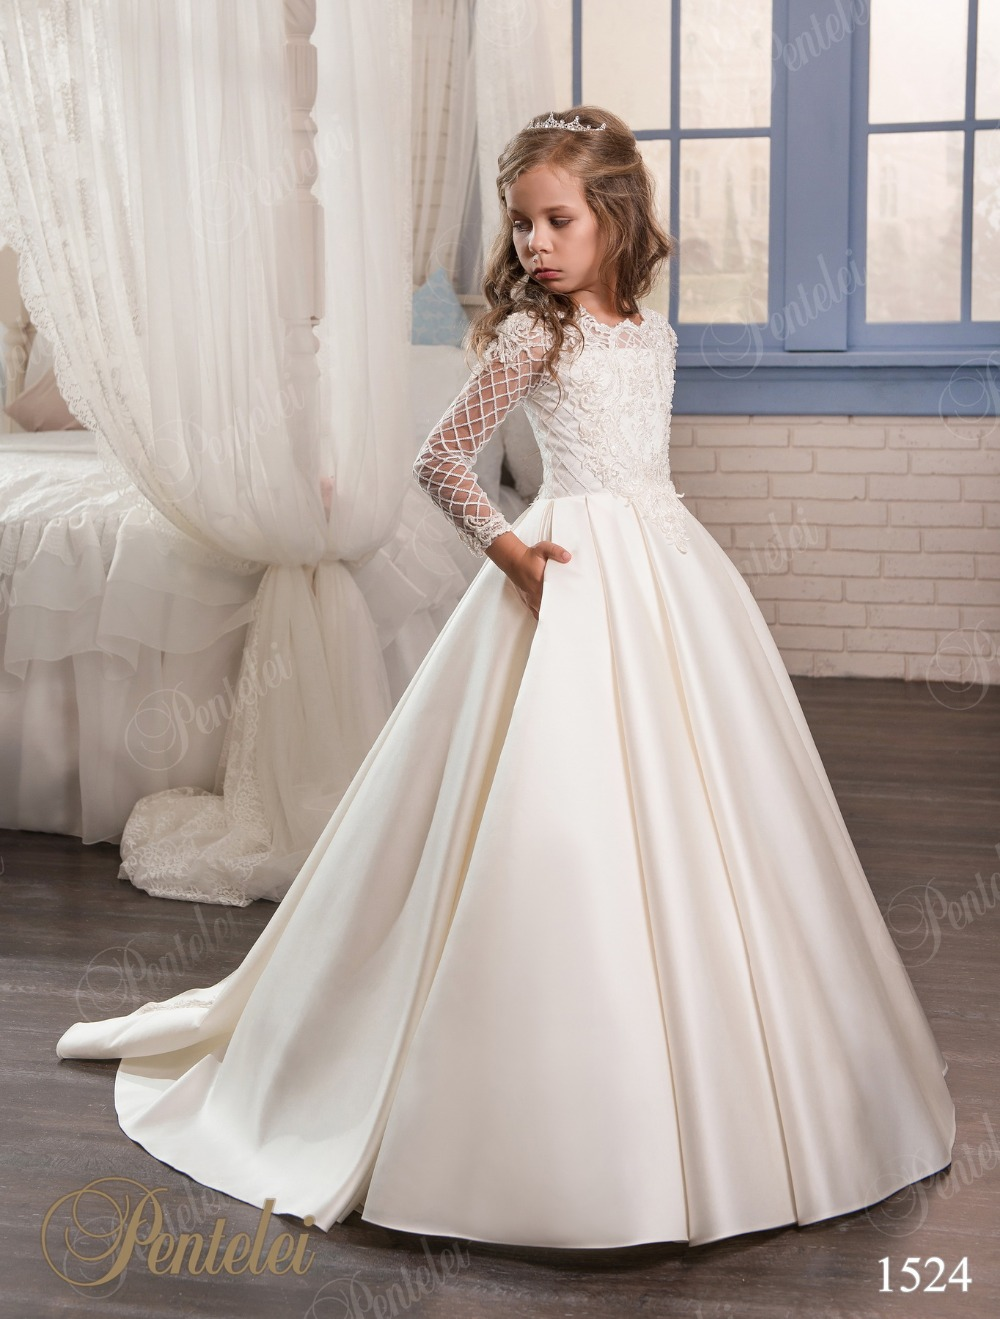 2017 Pink Ivory Flower Girl Dresses For Weddings Long